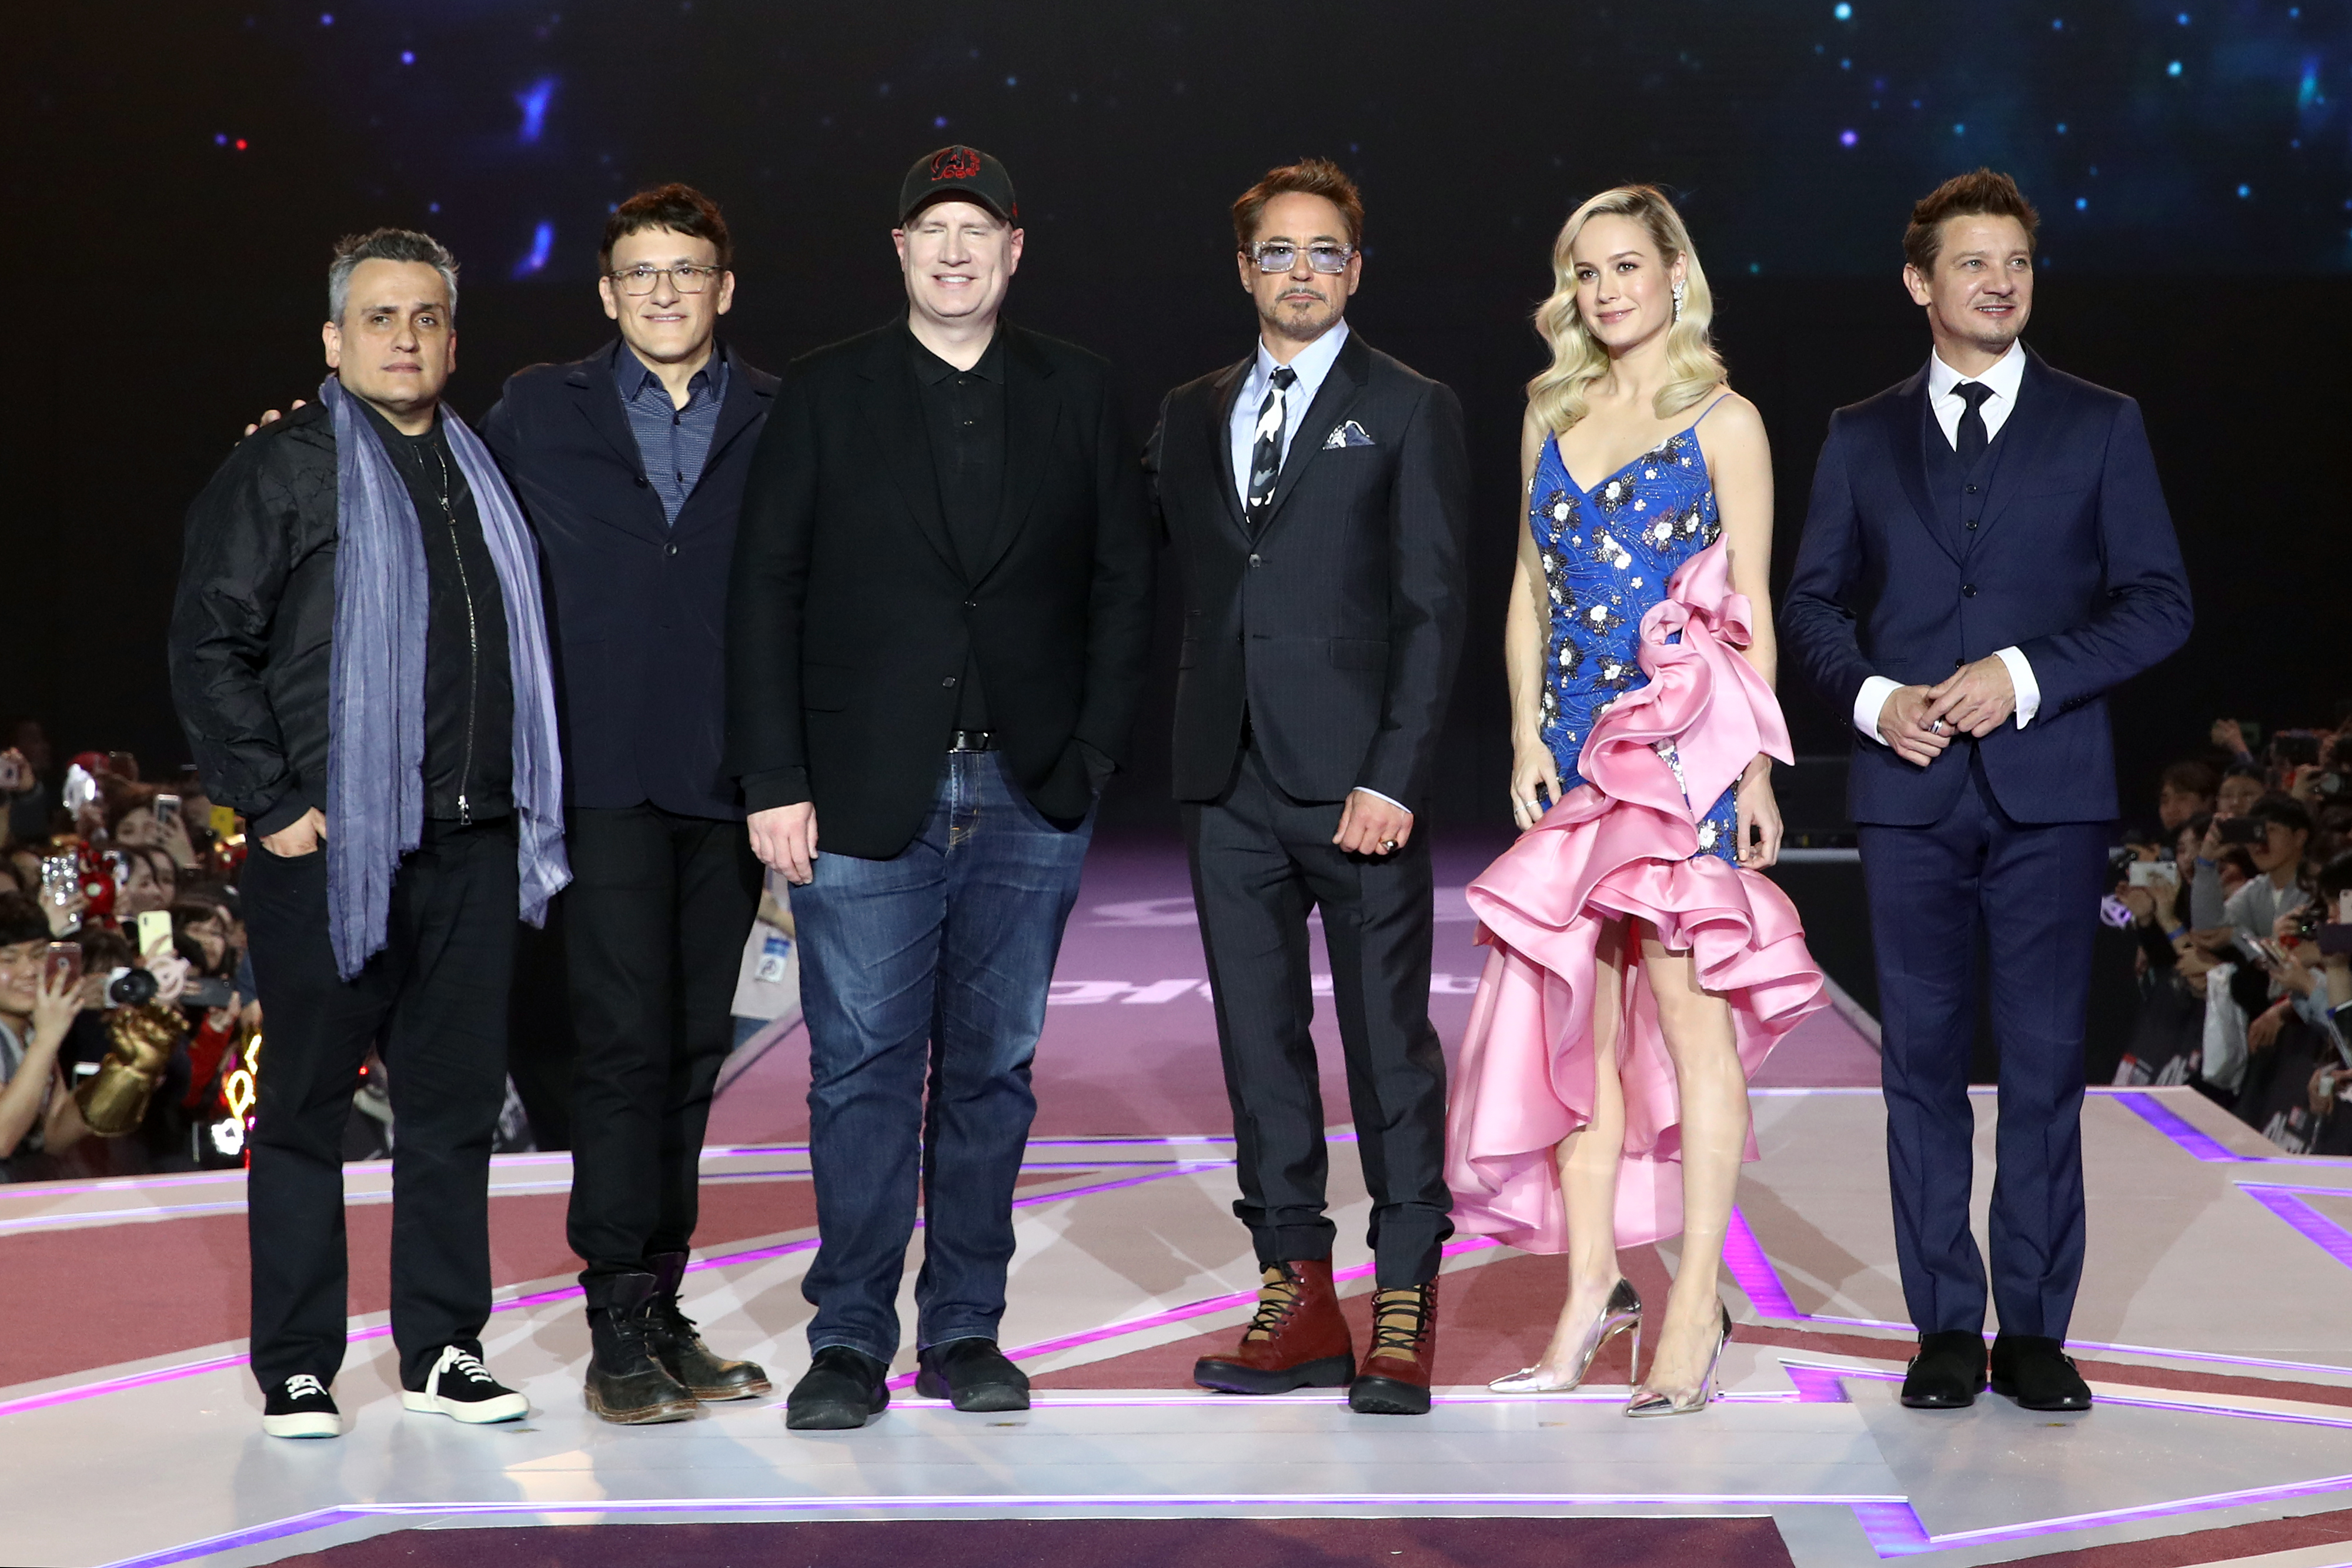 Joe Russo, Anthony Russo, Kevin Feige, Robert Downey Jr., Brie Larson and Jeremy Renner (left to right) attend the fan event for Endgame's South Korea premiere